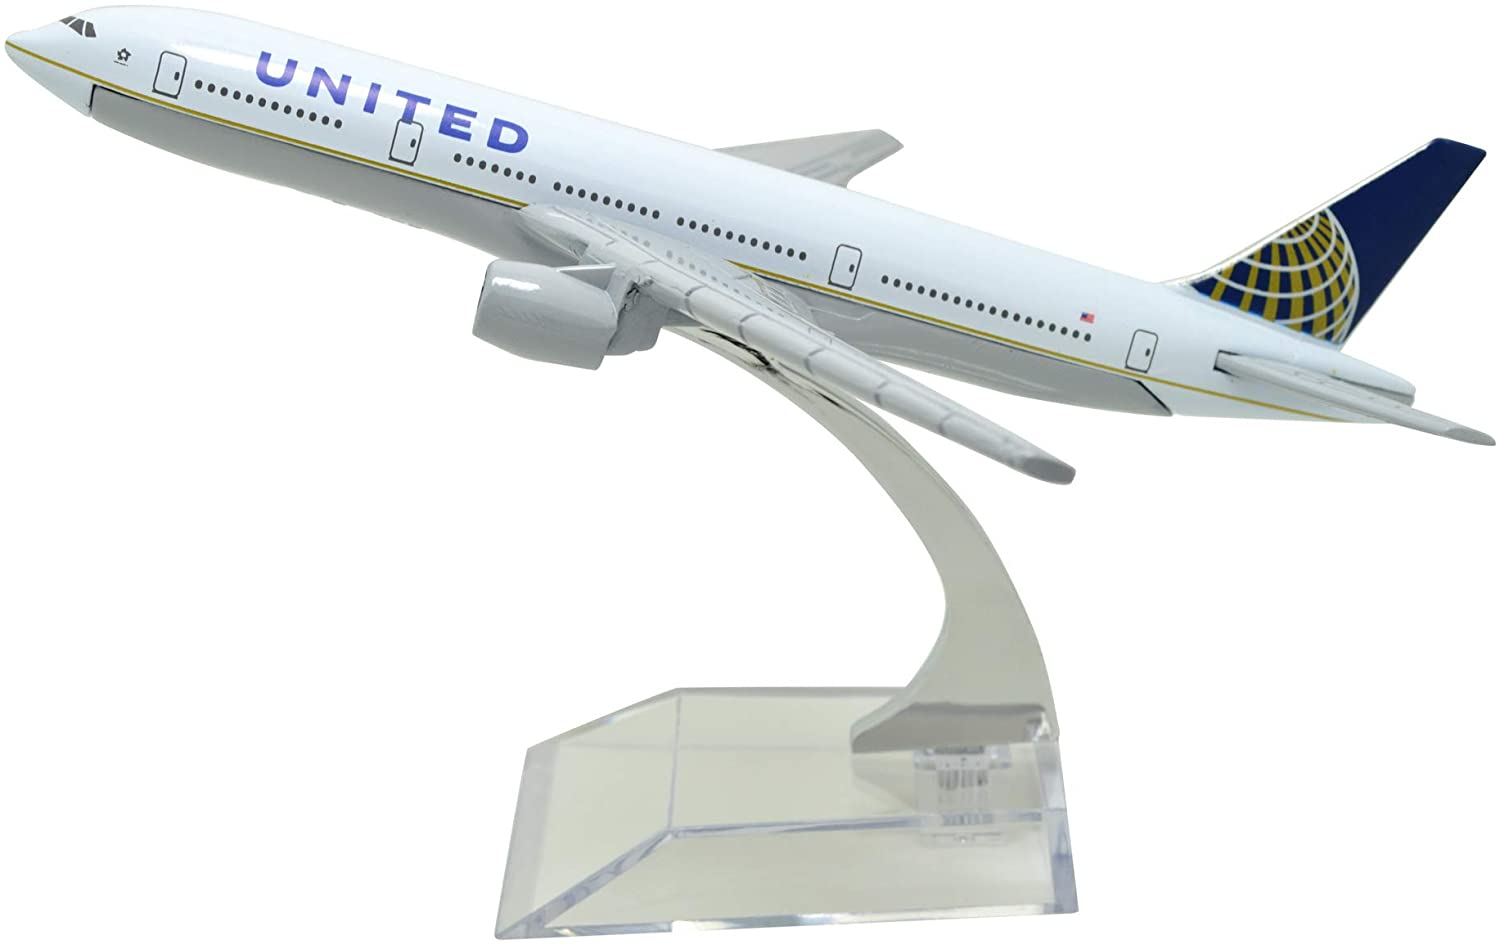 TANG DYNASTY(TM) 1:400 16cm B777 United Airlines Metal Airplane Model Plane Toy Plane Model